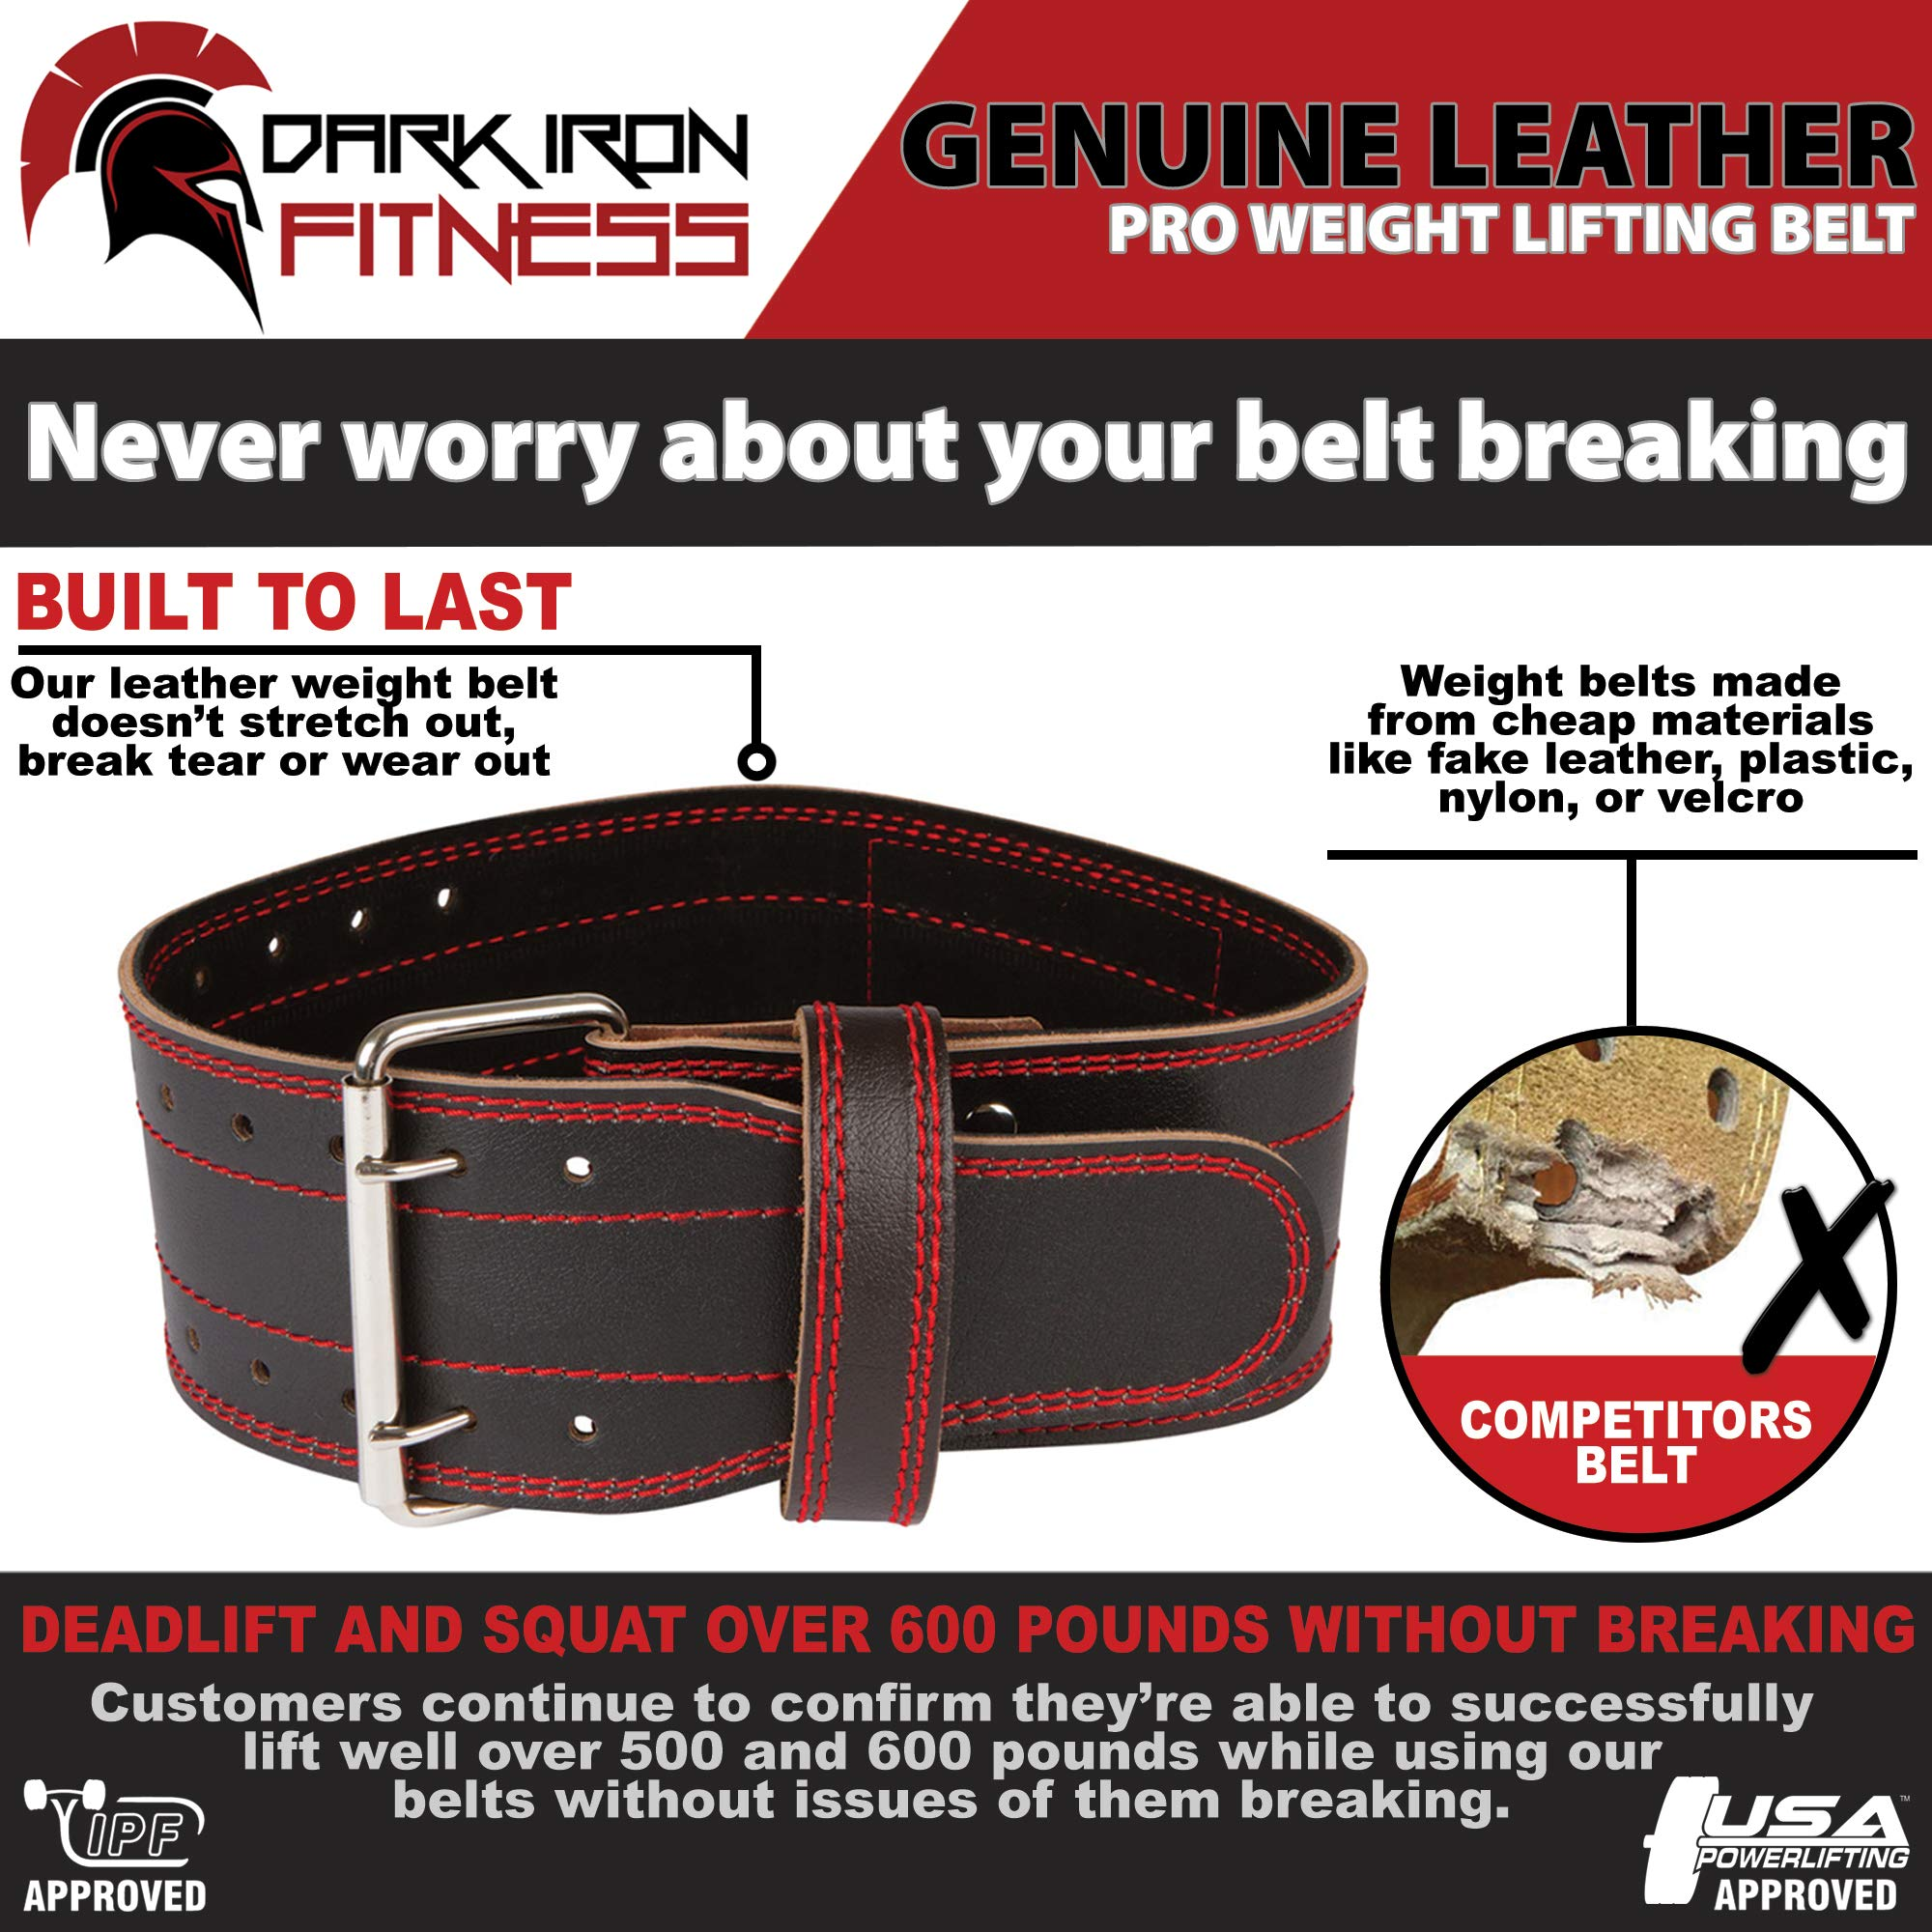 Small Lifting Leather Squatt Belt Weight Lifiting Belts for Back Fitness Belt Workot Belt Wheigt Belt Weight Lifting Belts Weighlifting Back Belt Fitness Belts Mens Weight Lifting Belt Lifting by Dark Iron Fitness (Image #3)